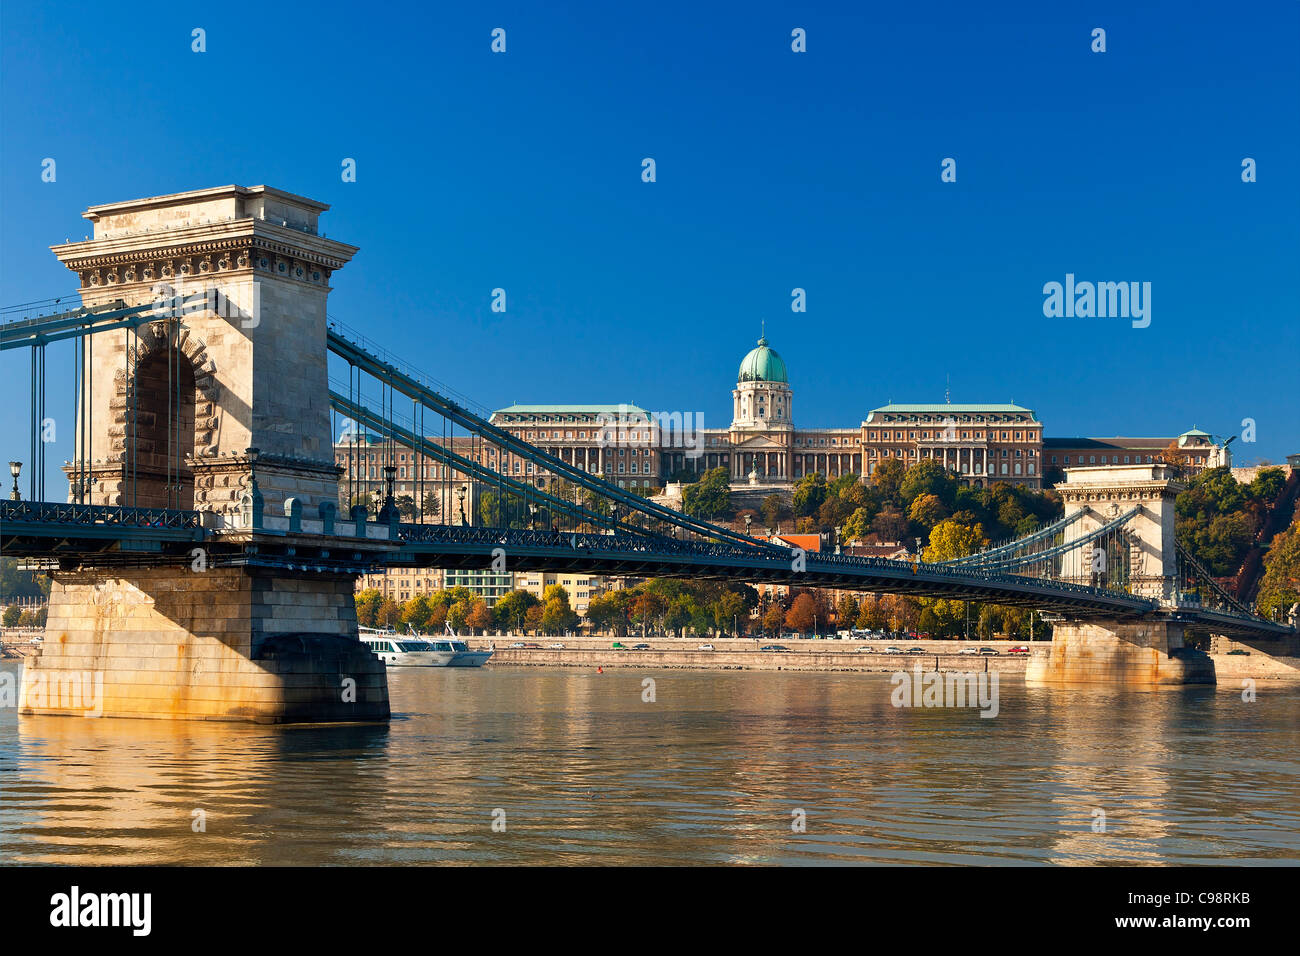 Budapest, Chain Bridge over Danube River and Royal Palace - Stock Image